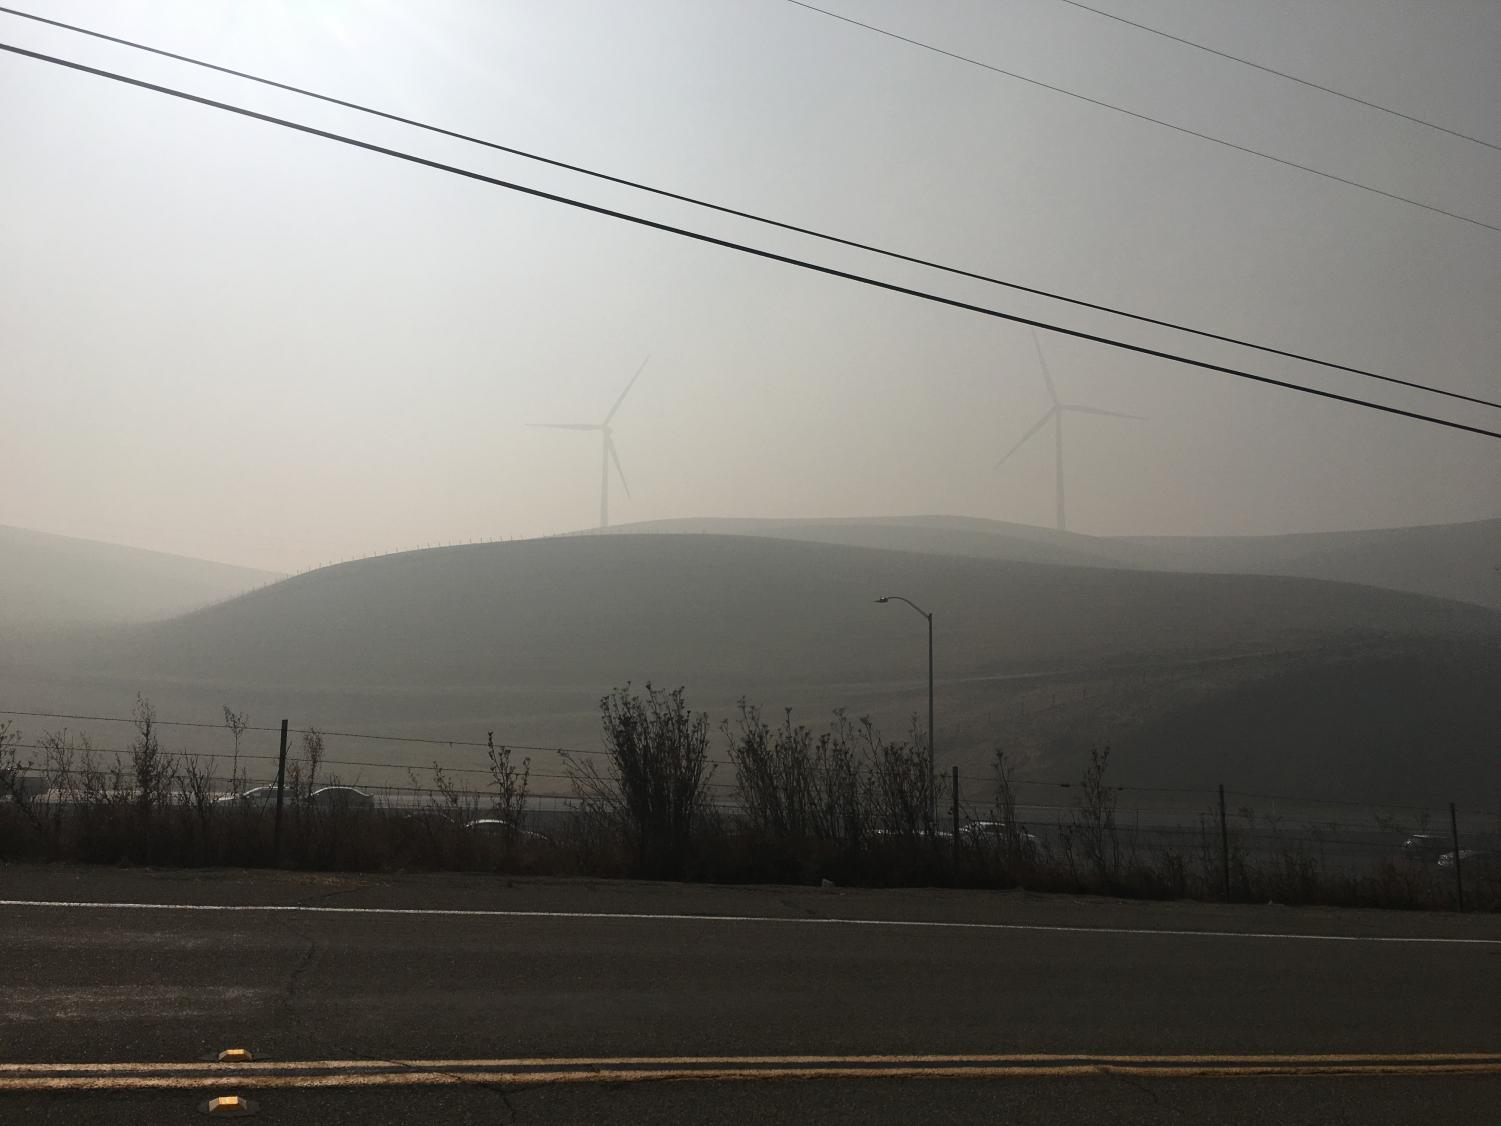 Smoke fills the air around the Altamont Pass, obscuring the iconic hills and windmills on the way into Livermore.